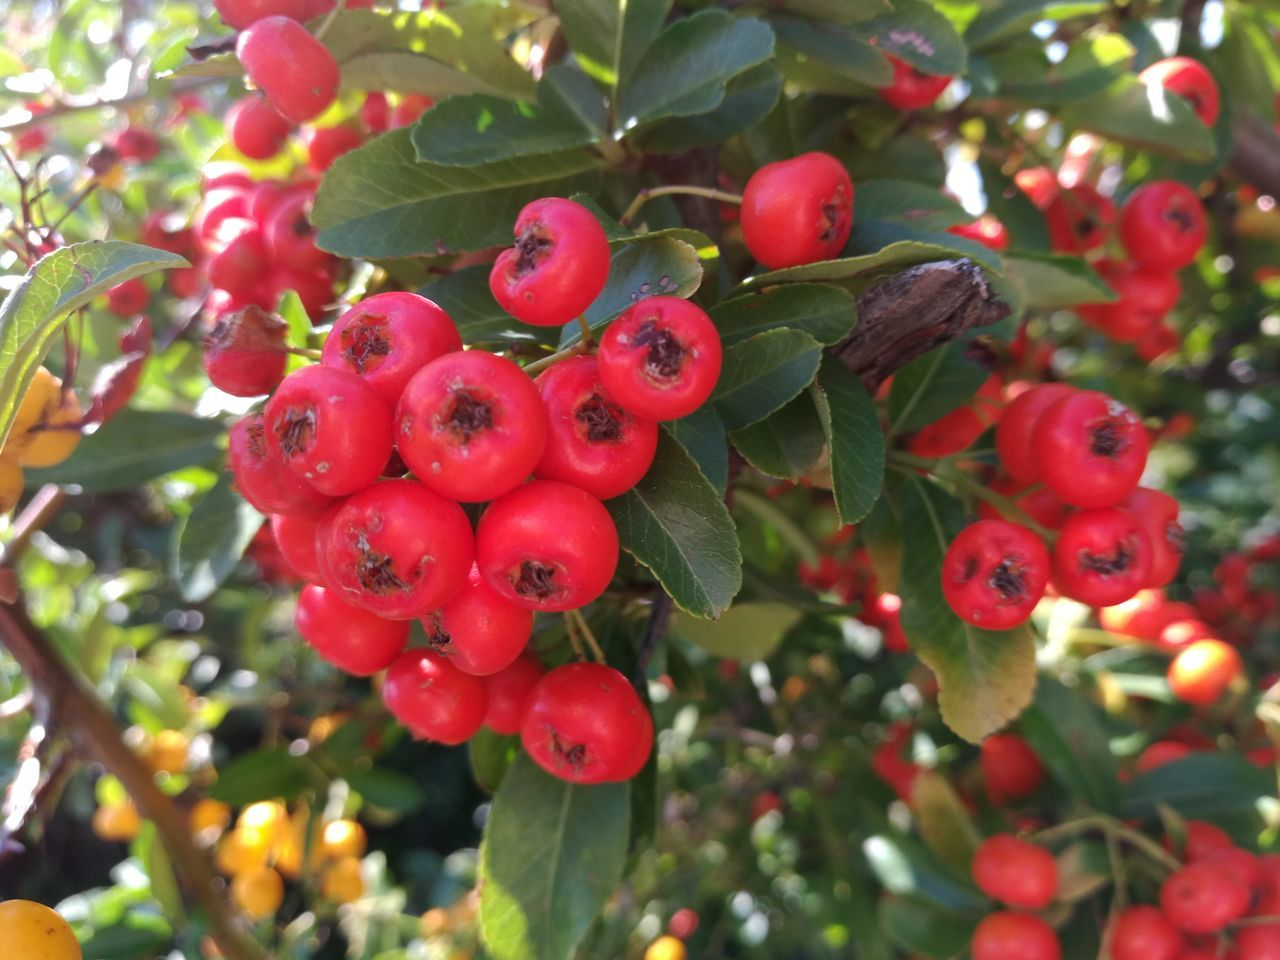 Fruit Growth Red Tree Freshness Leaf Close-up Food And Drink Bunch Of Berries Outdoors Plant Healthy Eating Nature No People Low Angle View Agriculture Day Food Rowanberry Assisi